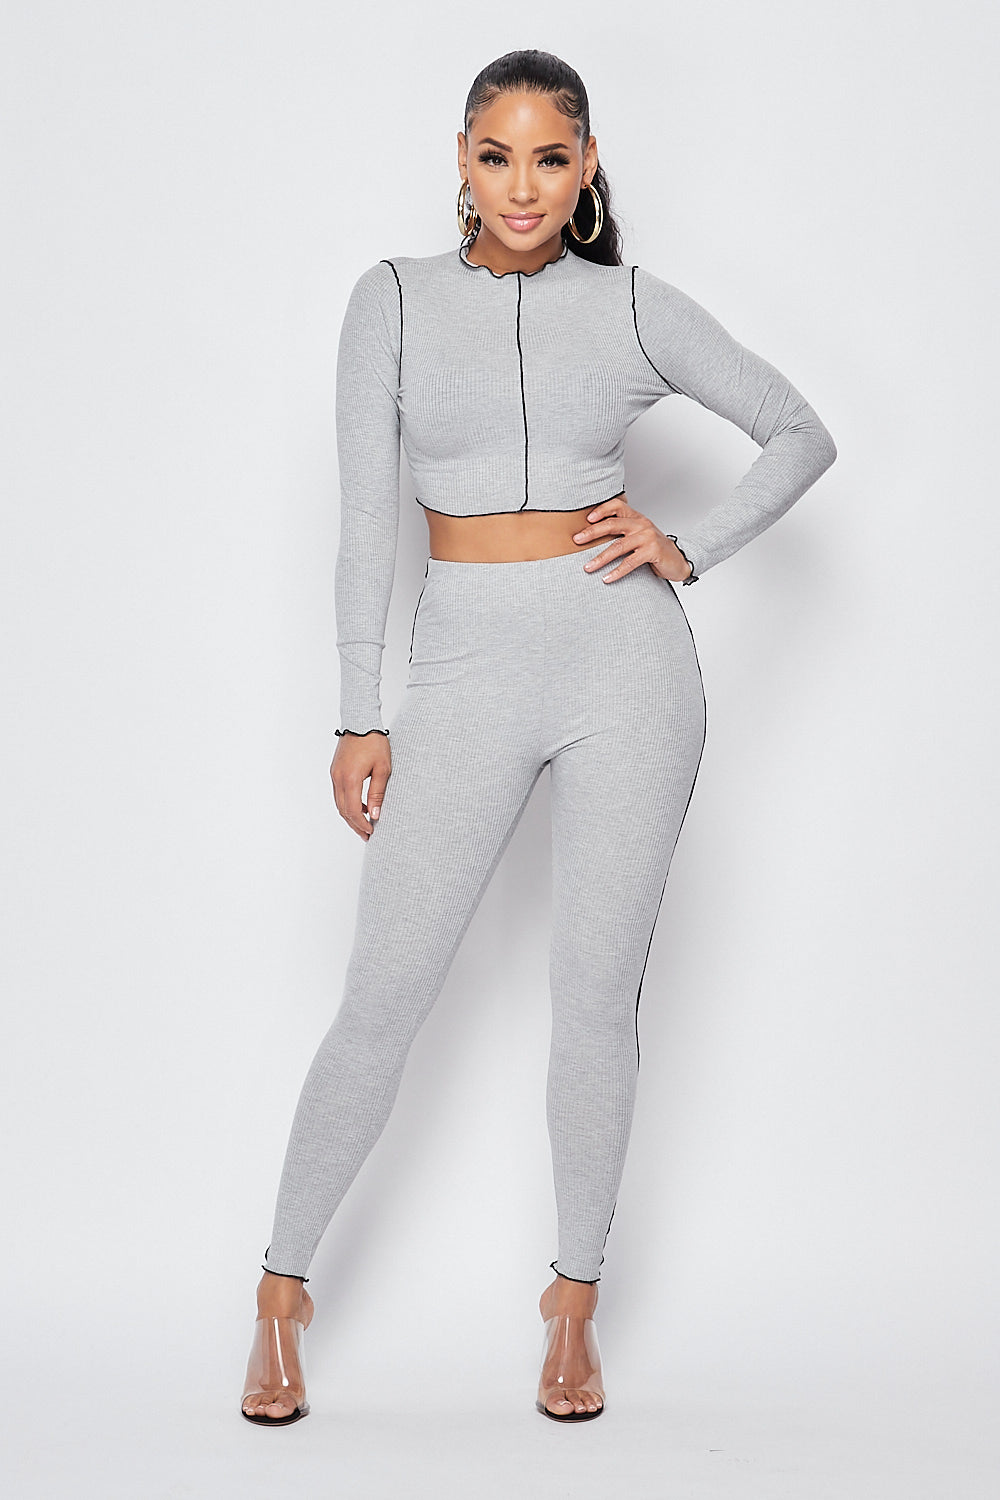 Sexy Long Sleeve Knit Crop Top w/ Pants Set-H.GREY - Fashion House USA